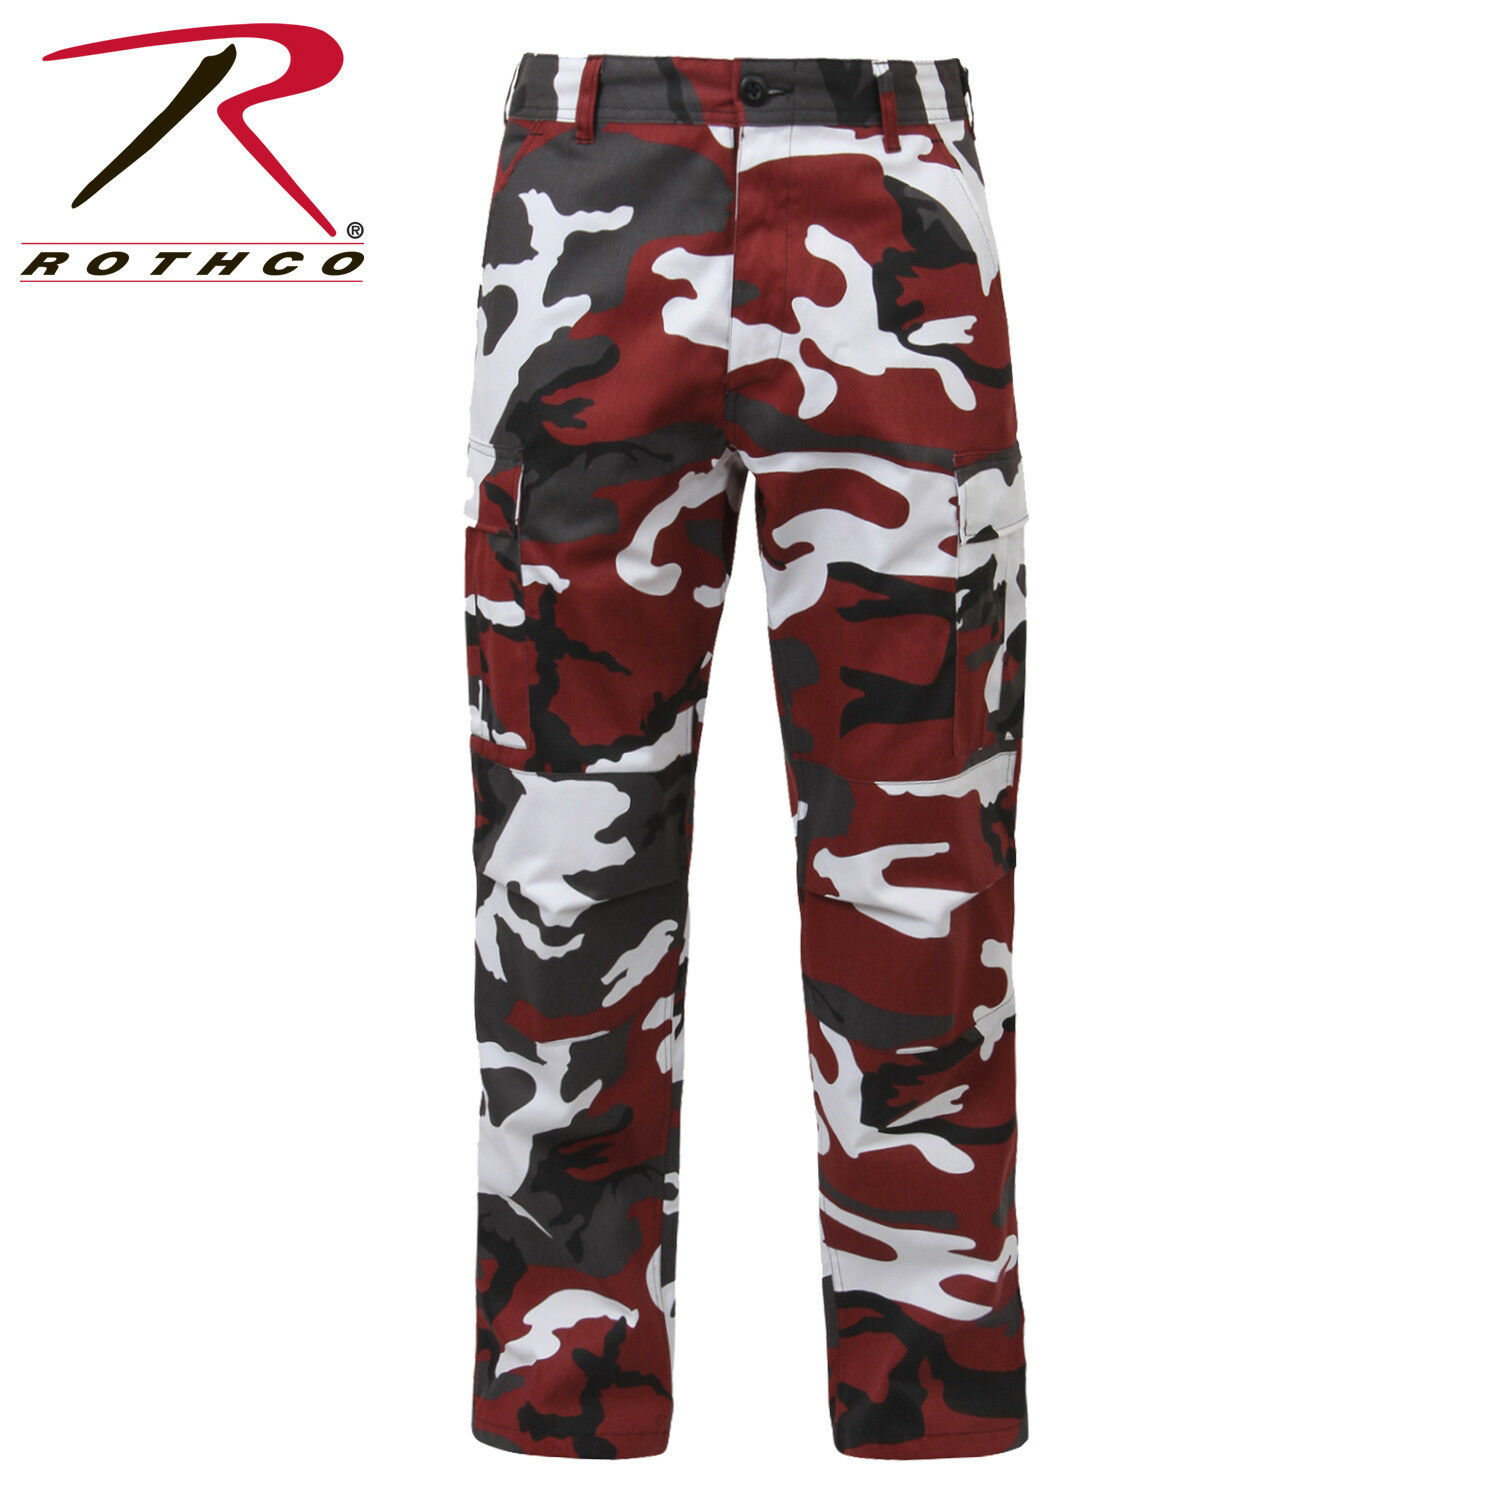 redhco Tactical BDU Pants Red  Camo  check out the cheapest